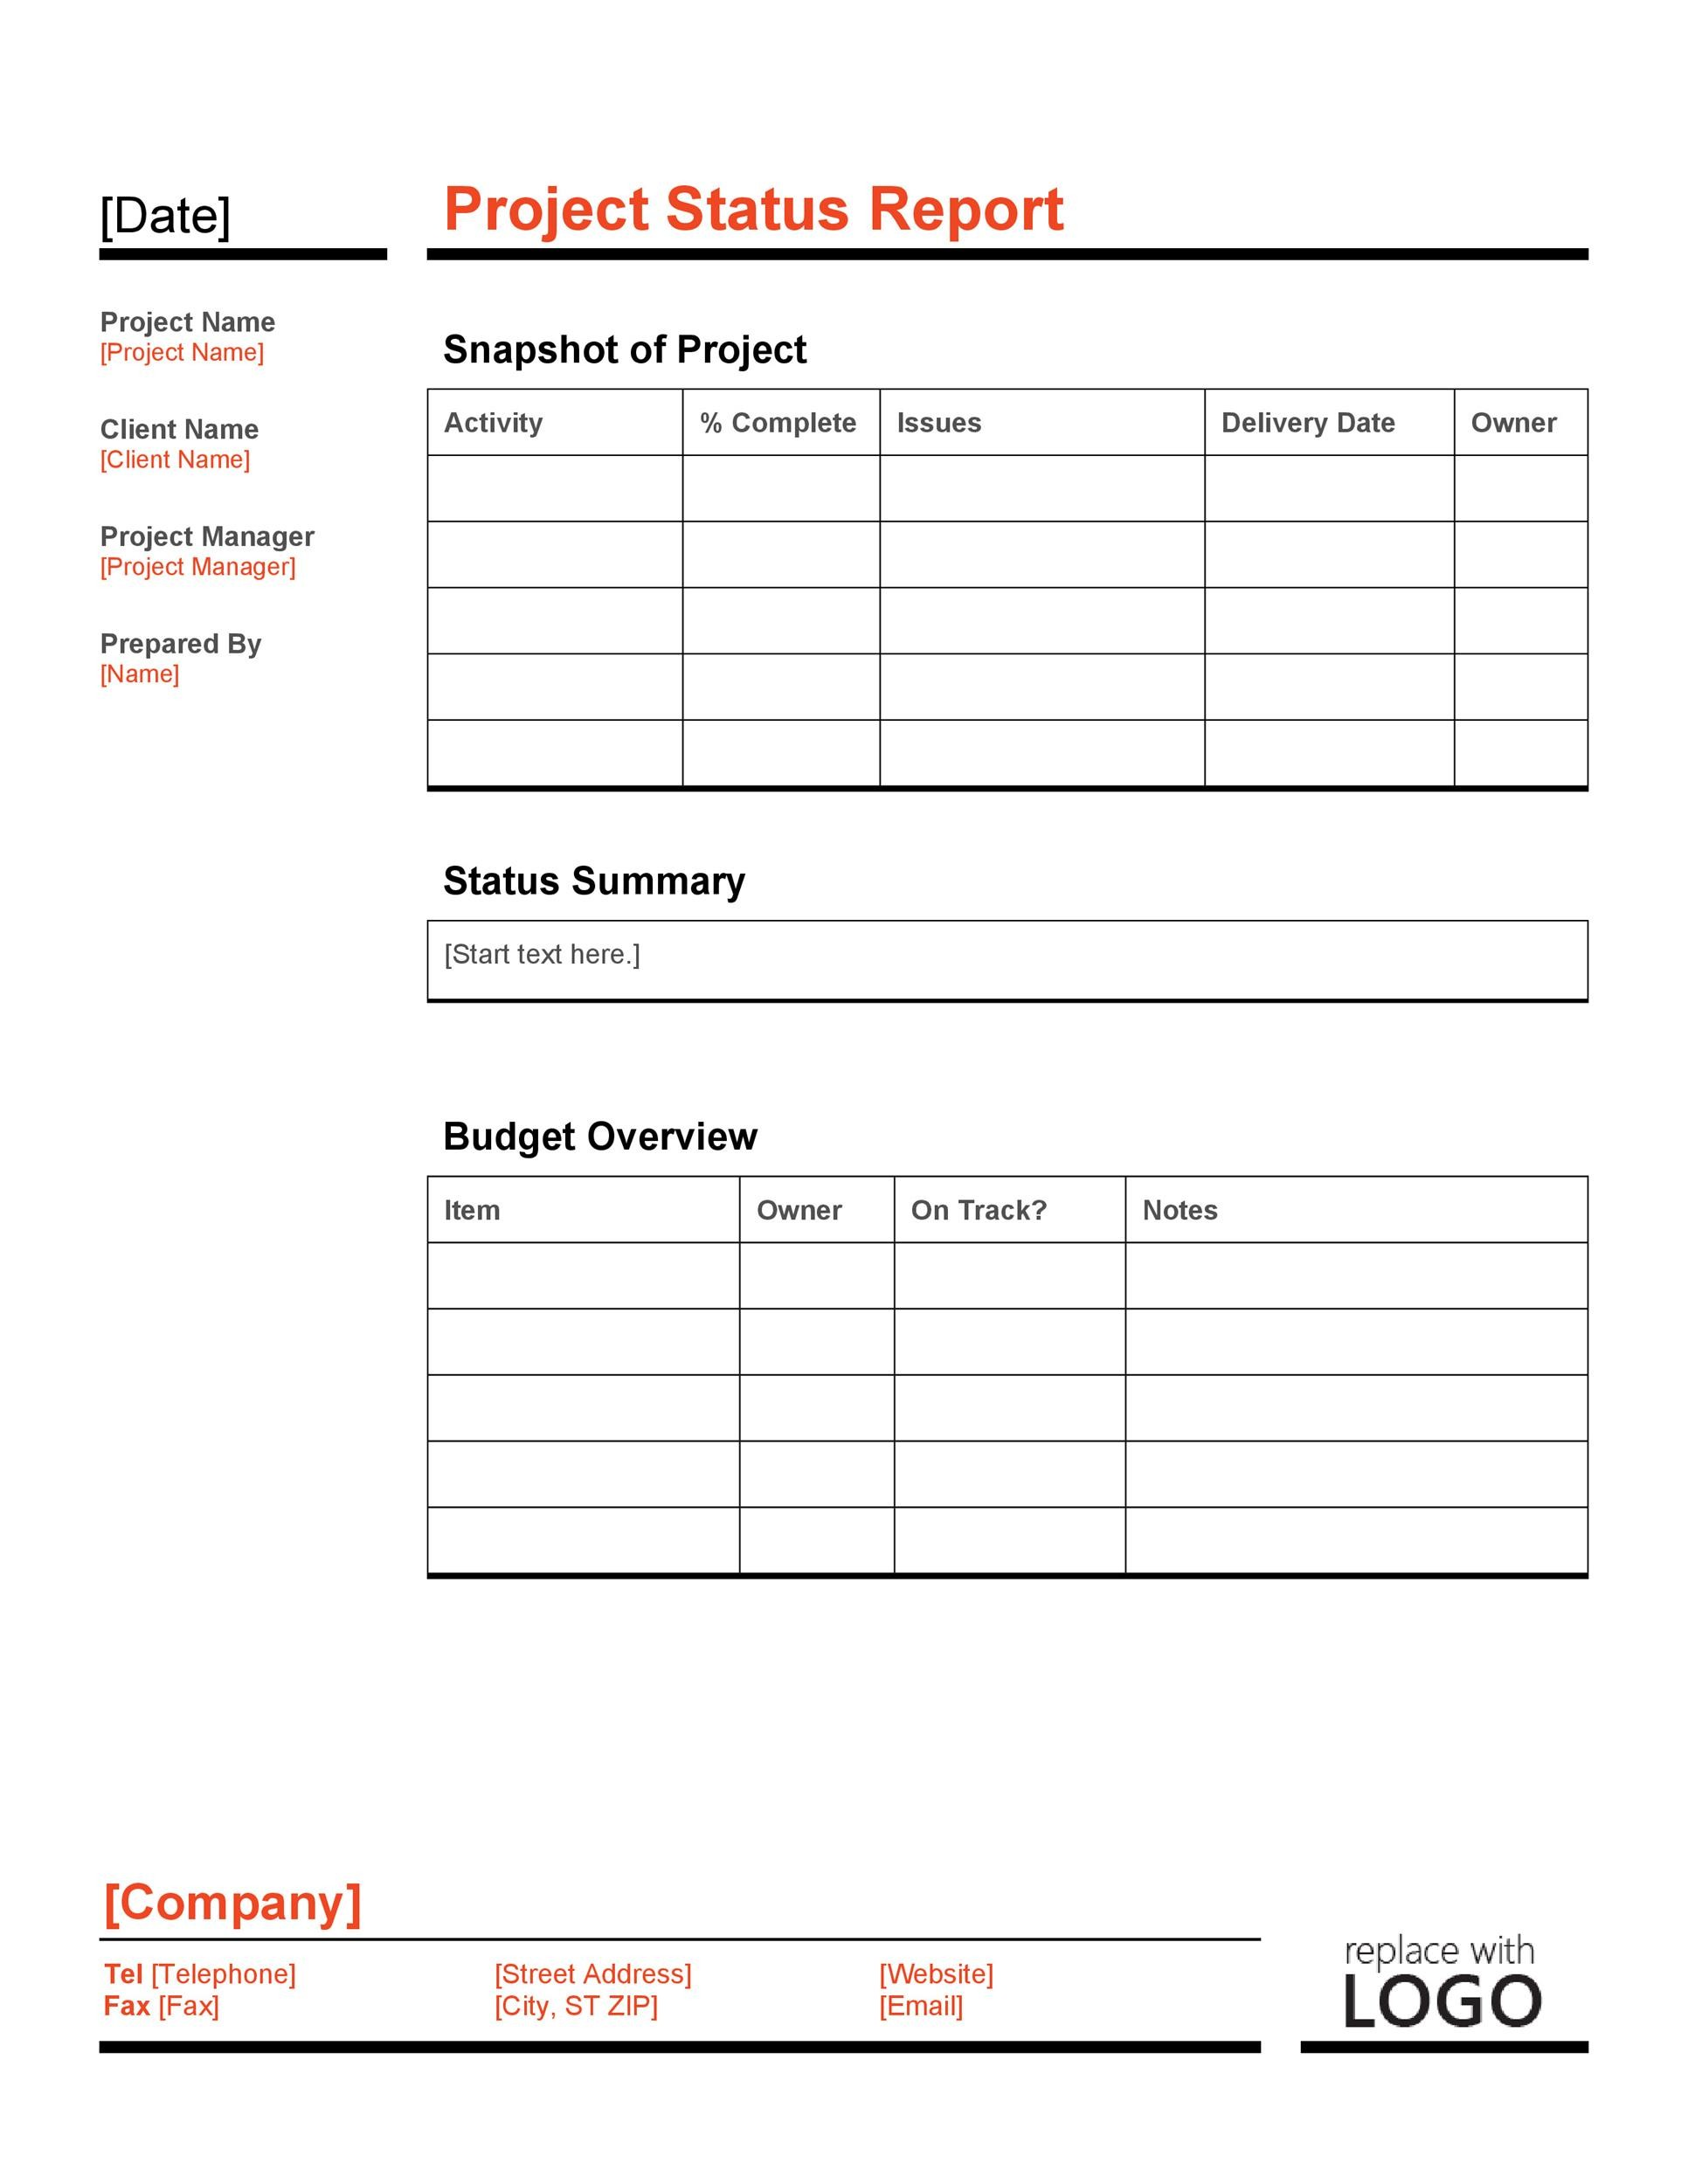 40 Project Status Report Templates Word Excel Ppt ᐅ Template Lab